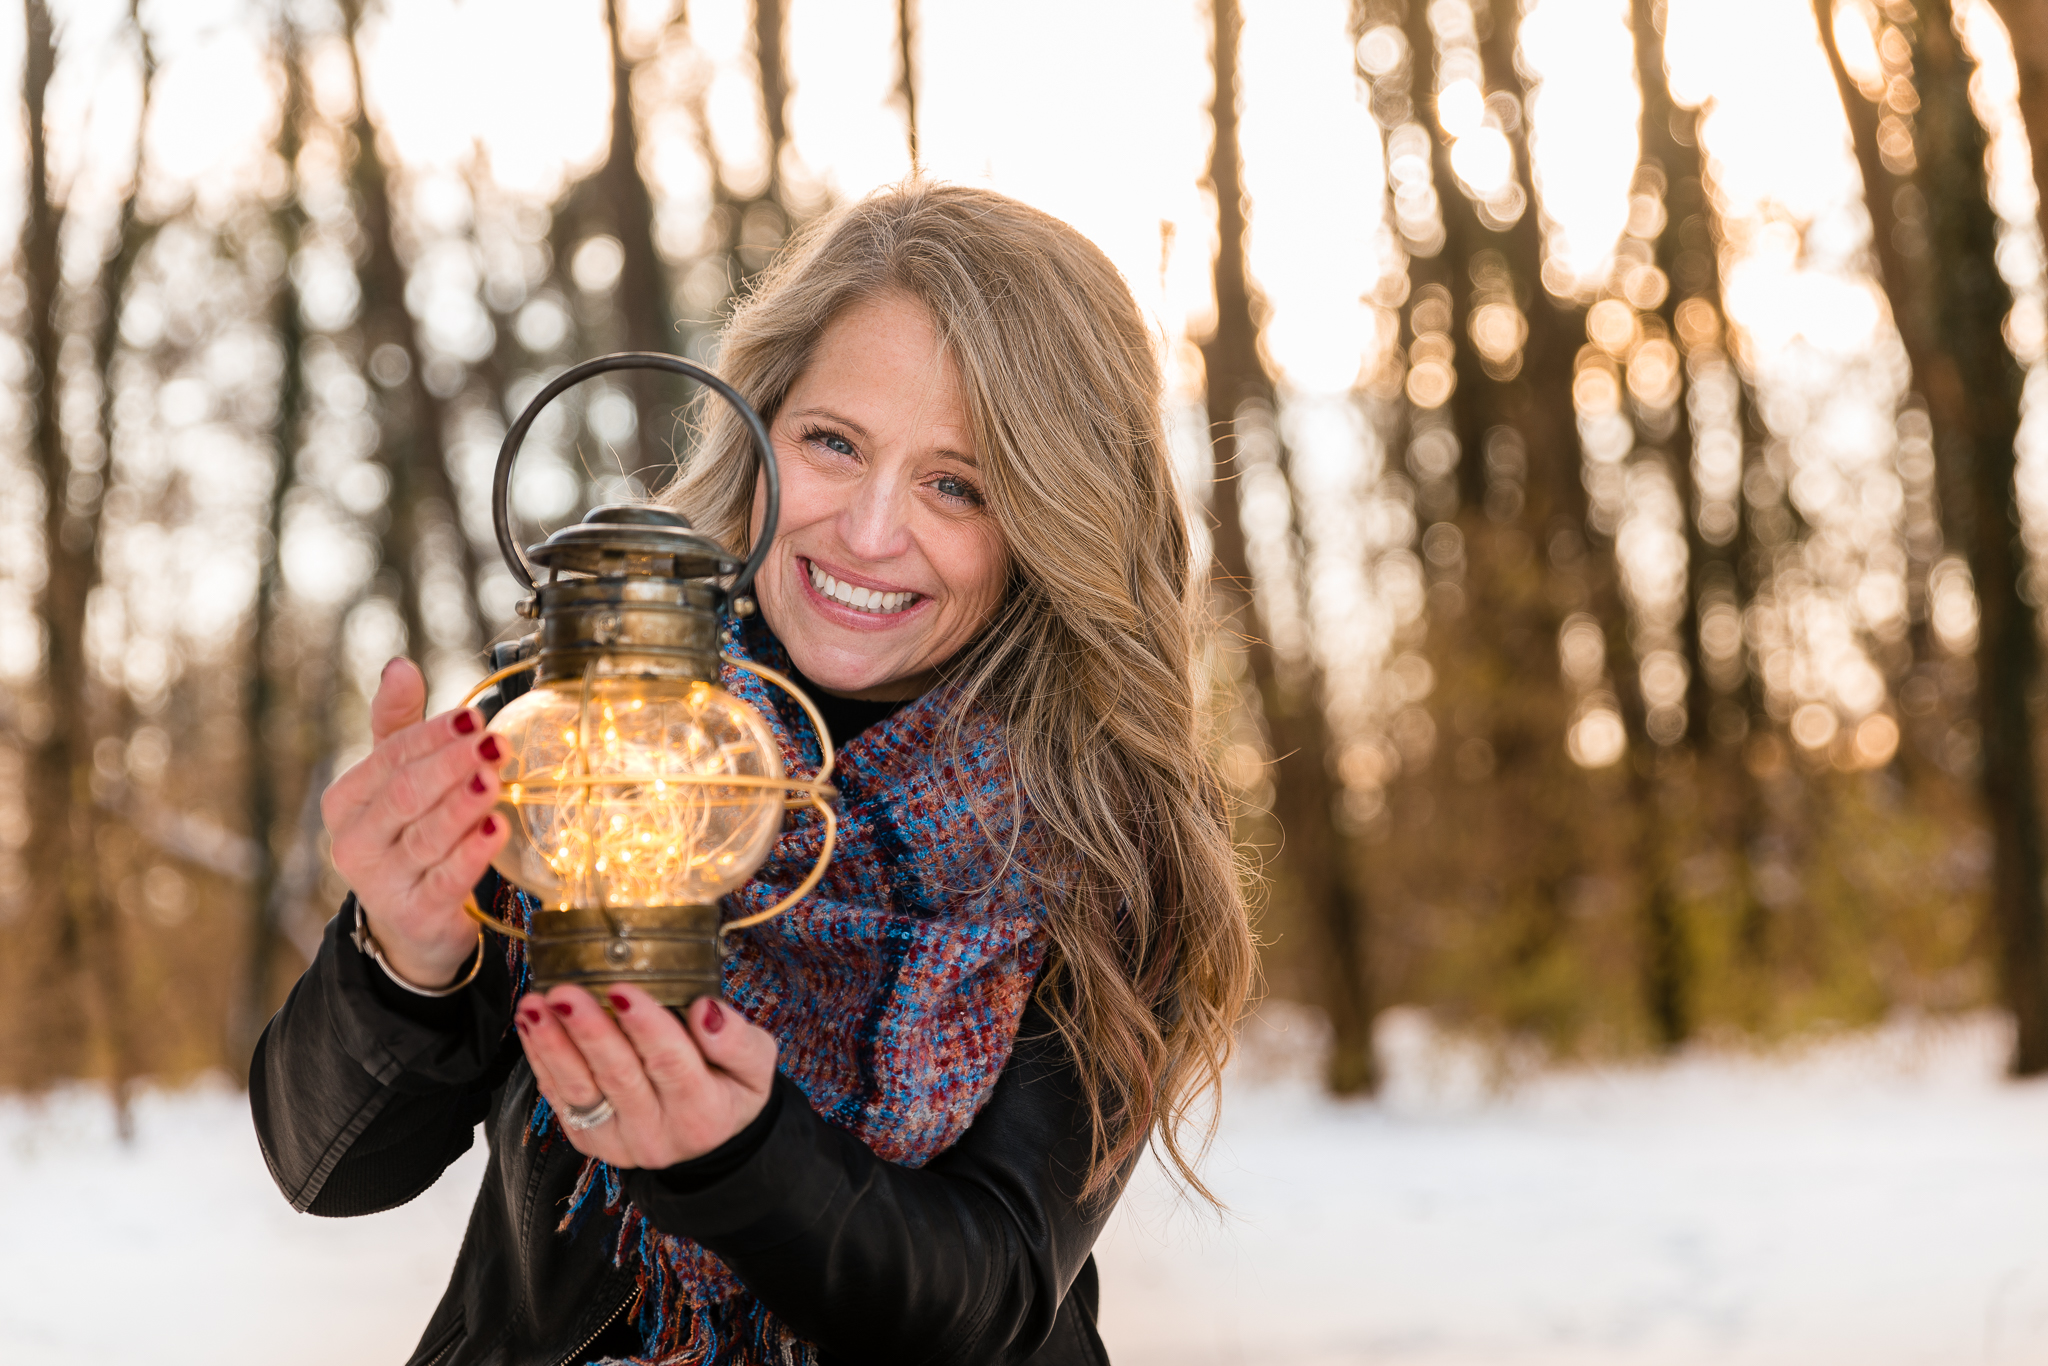 Envision Train owner Theresa Fackler at Overland Park in Lancaster shining fairy lights